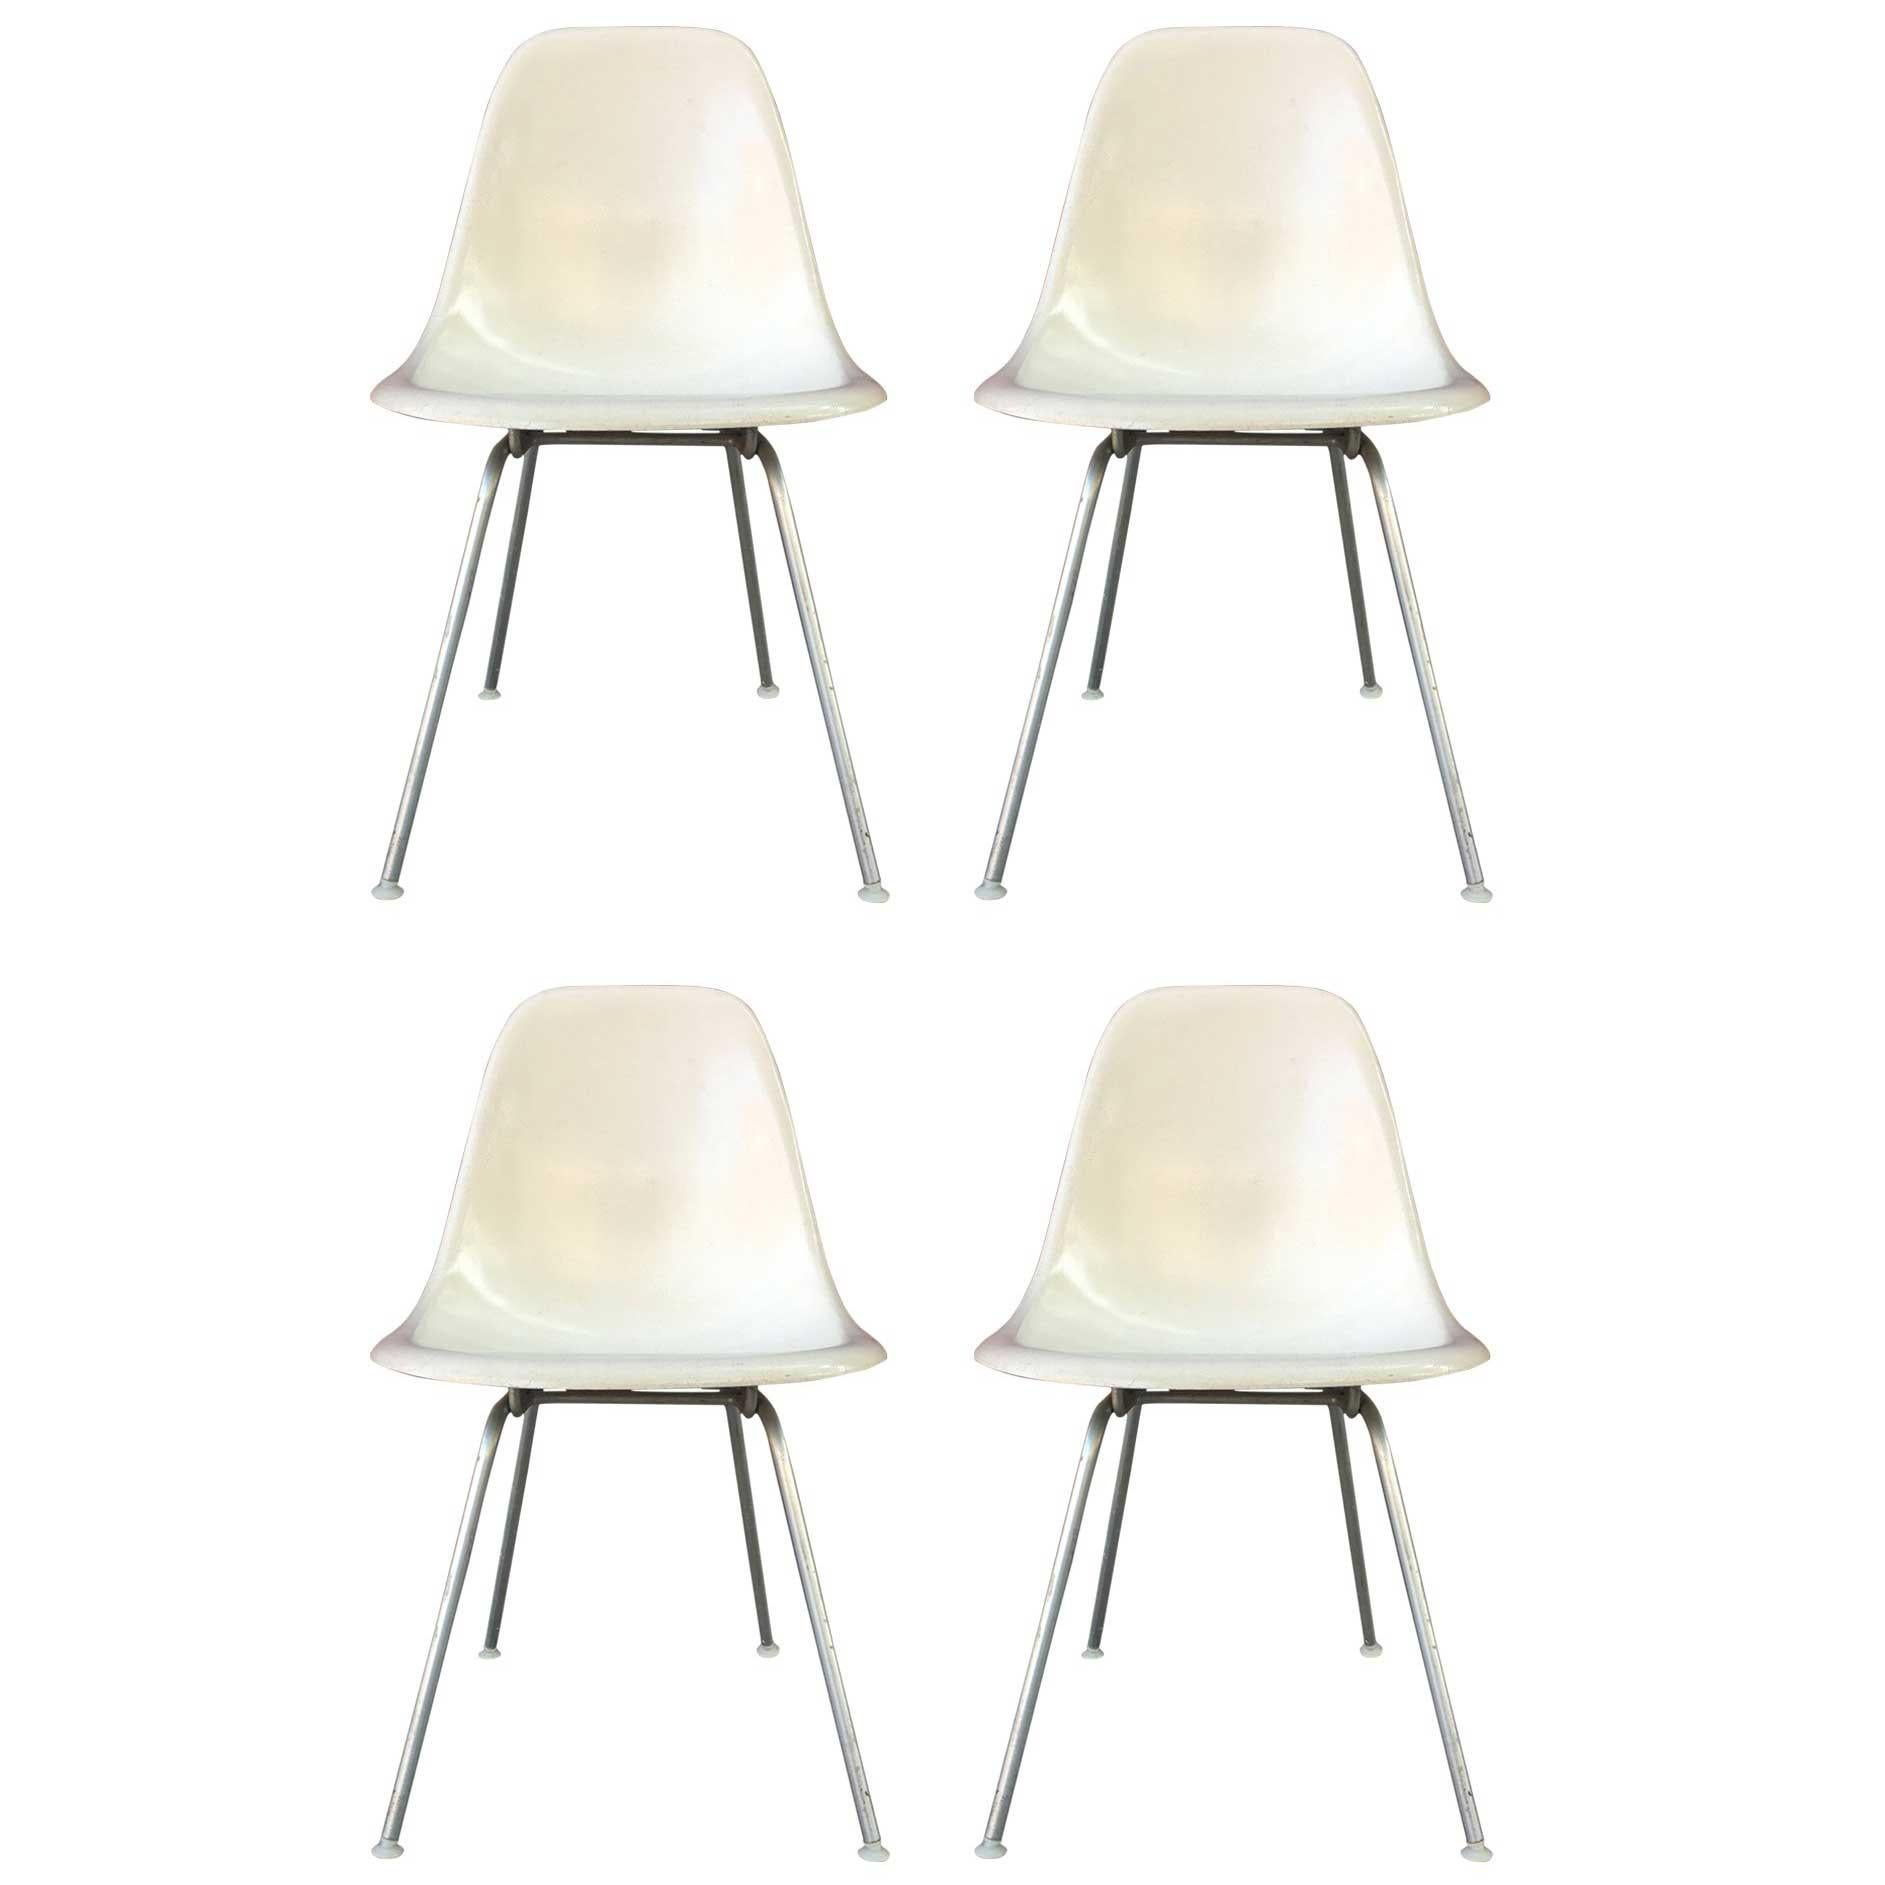 Four Parchment Herman Miller Eames Dining Chairs